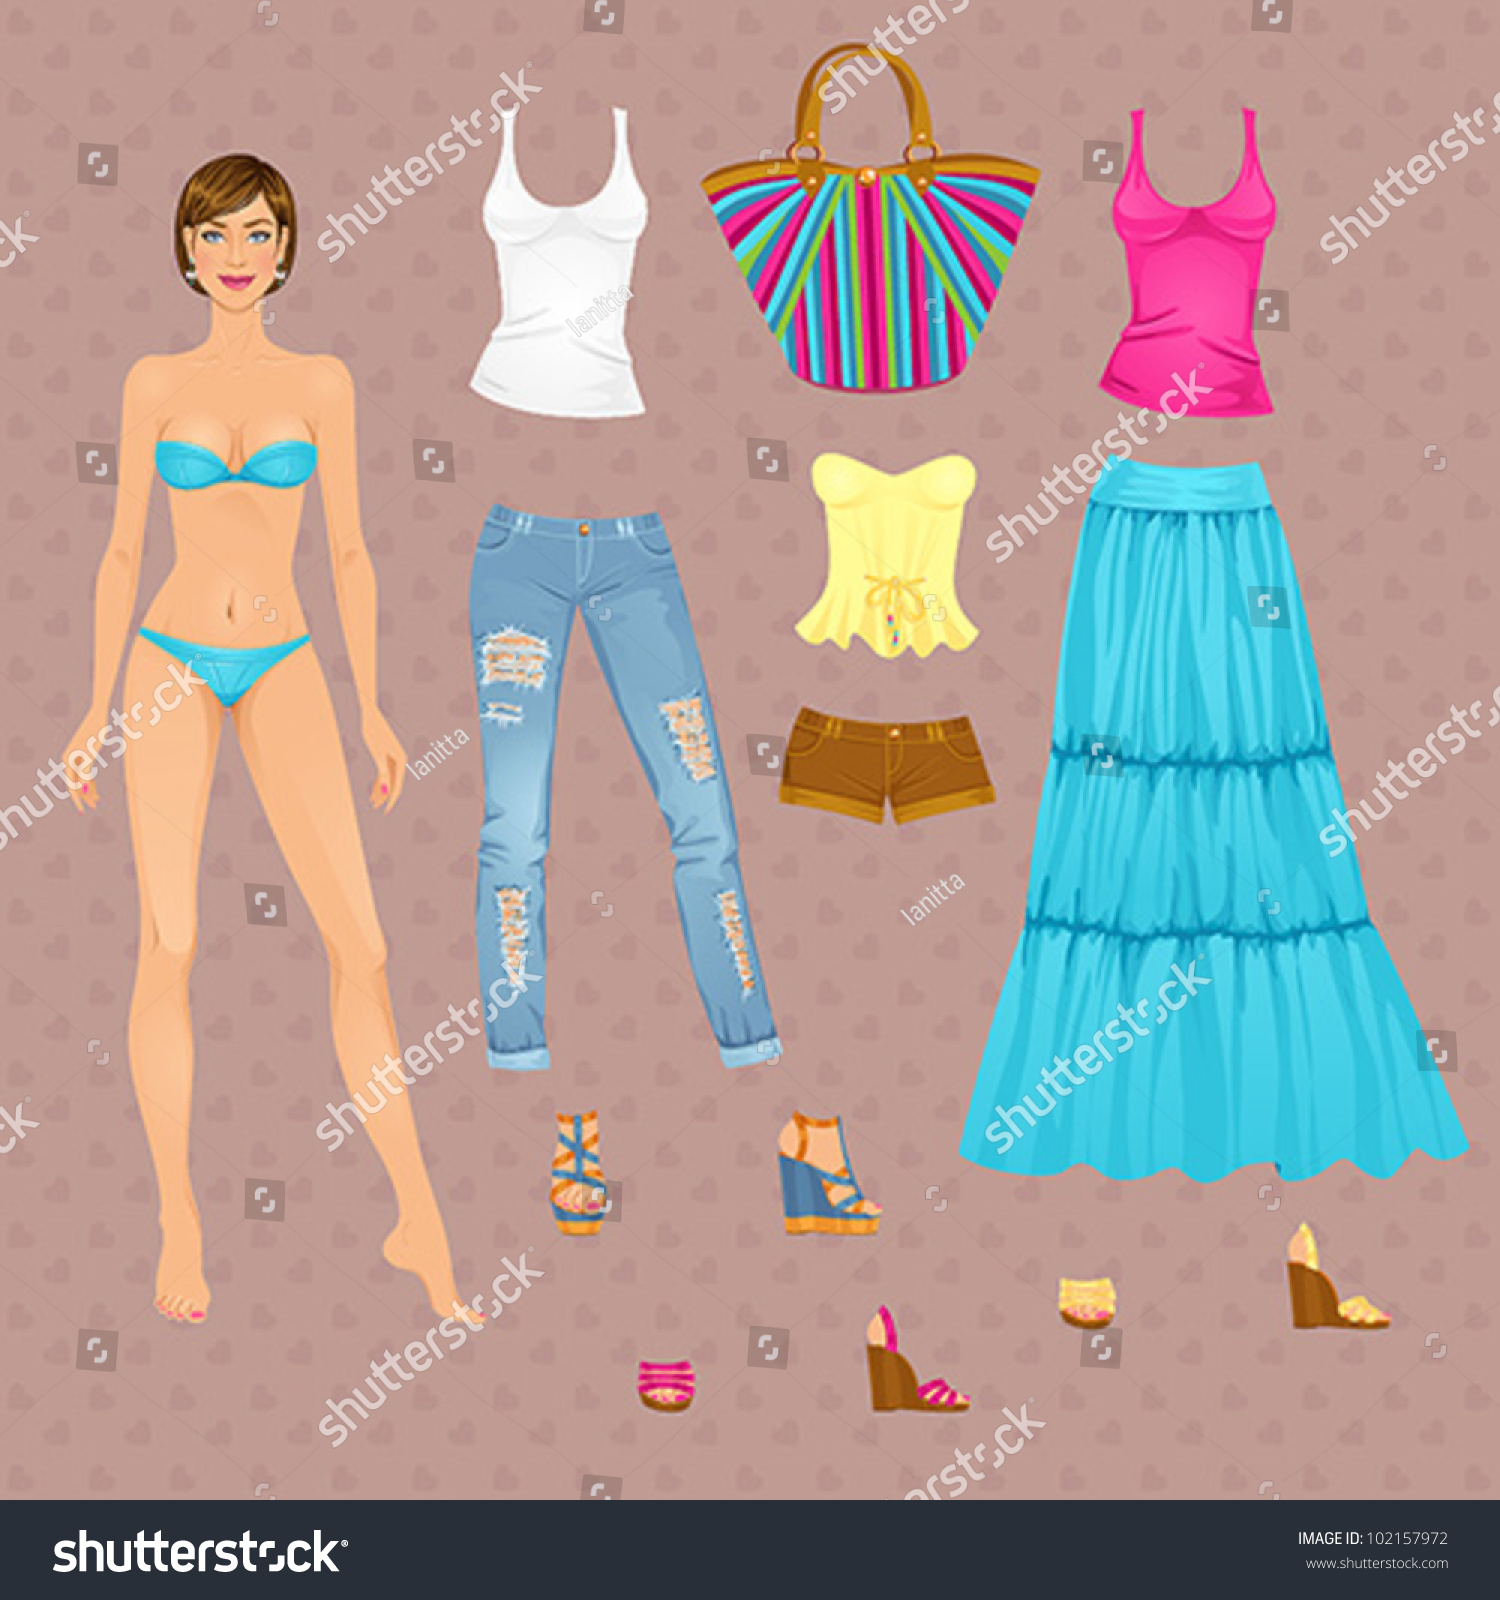 paper doll template woman - beautiful dress female paper doll ready stock vector